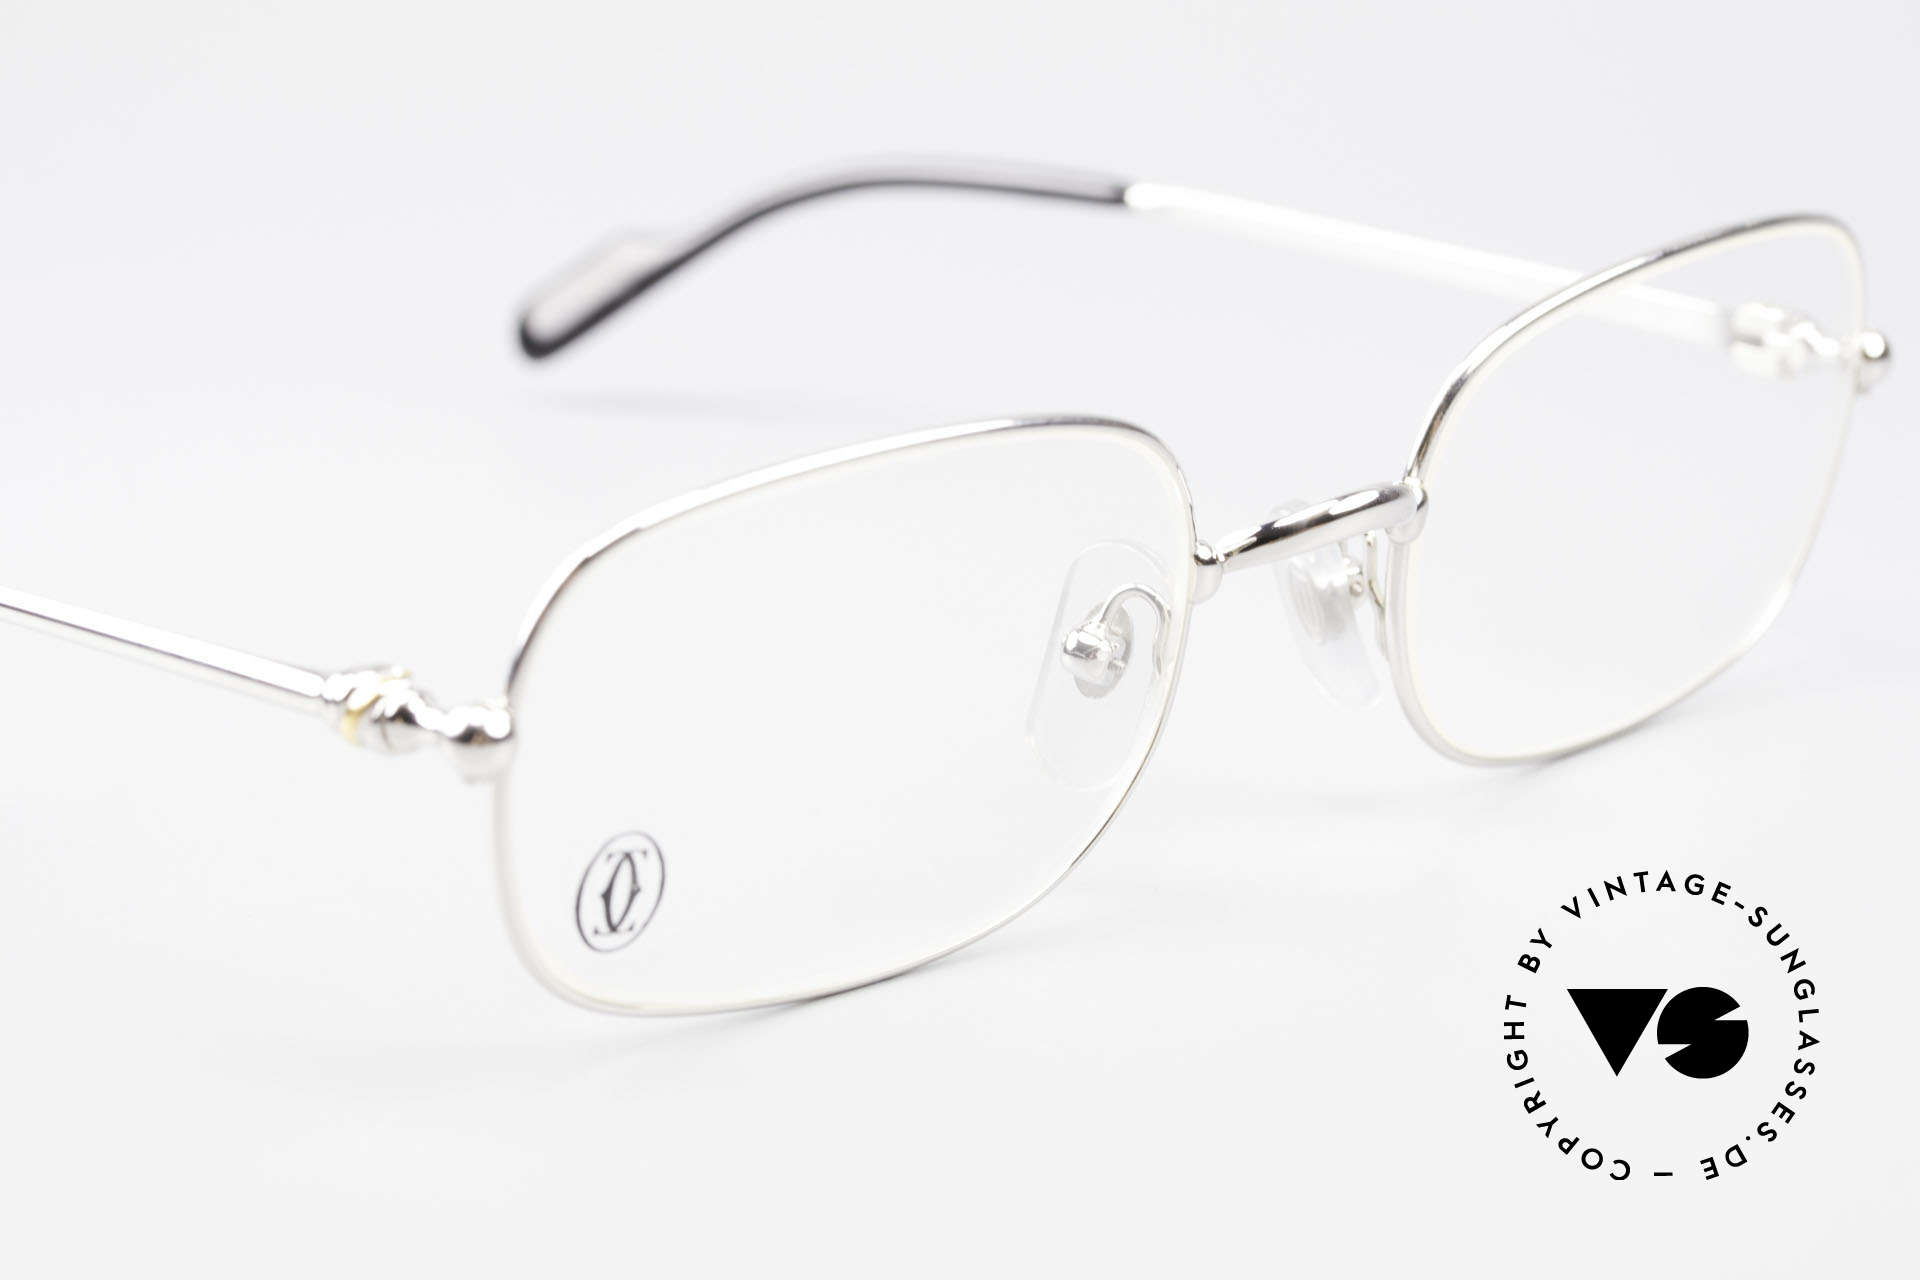 Cartier Deimios Square Frame Luxury Platinum, comes with an extra vintage leather case by GENTA, Made for Men and Women